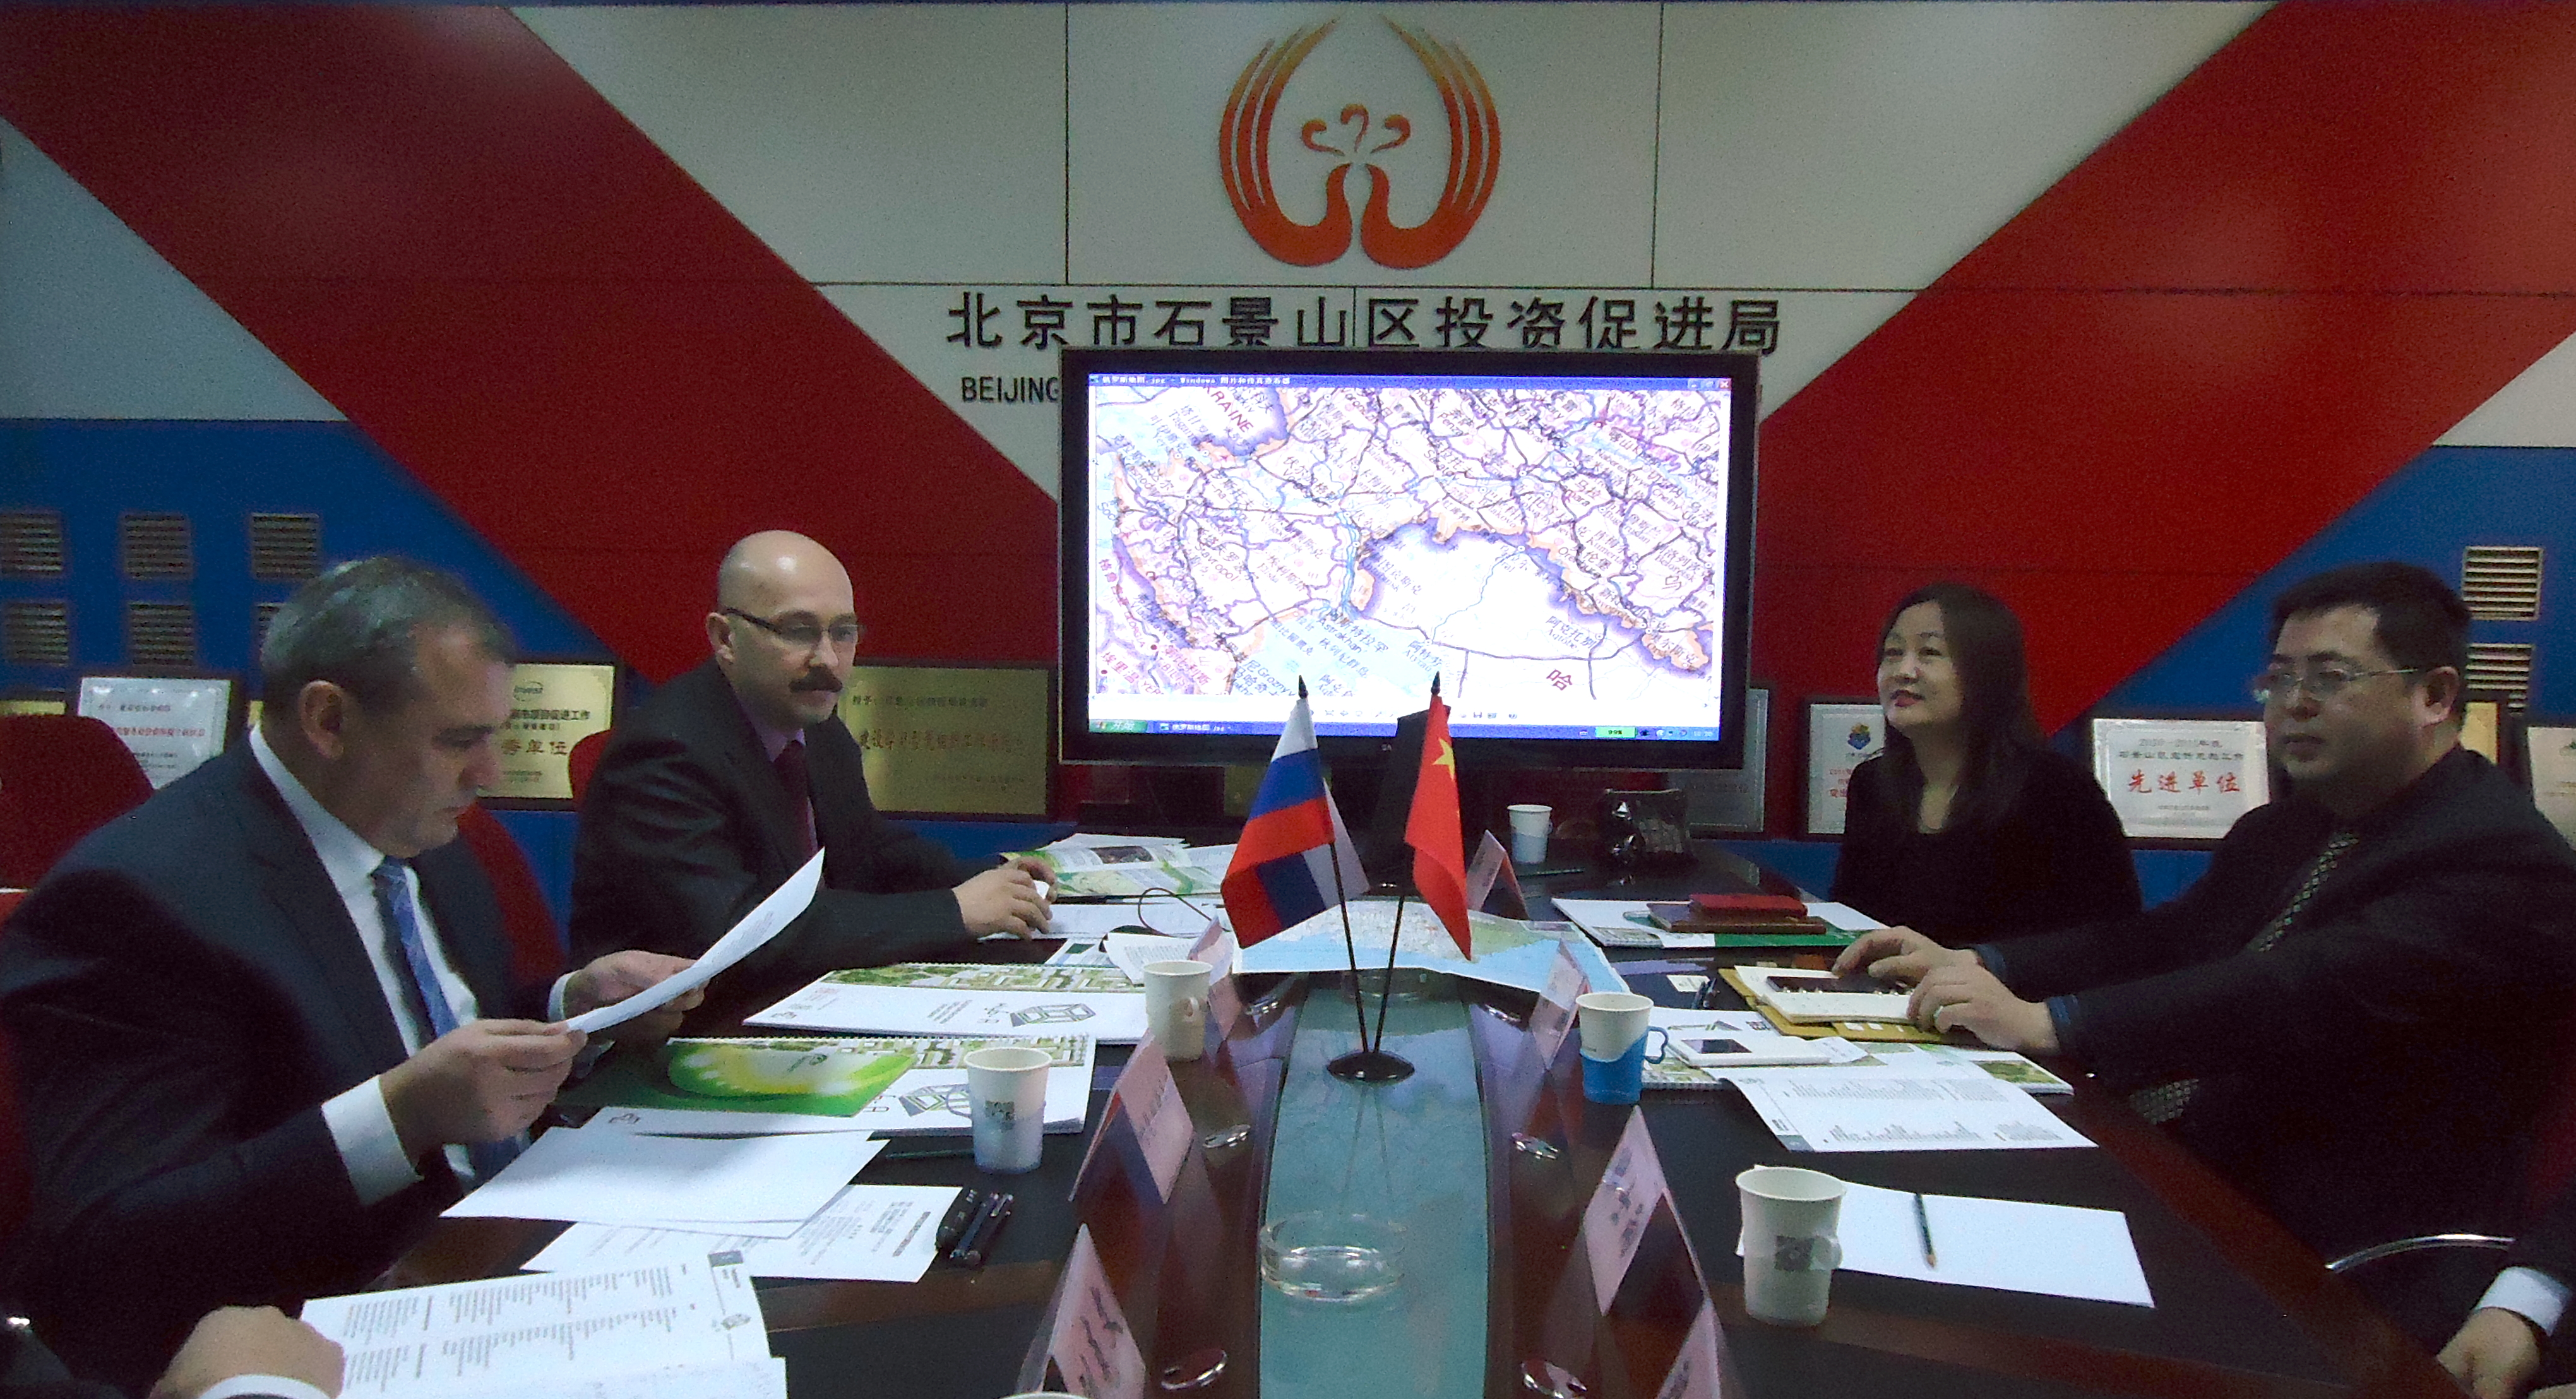 bei jing meeting 12.01.2015